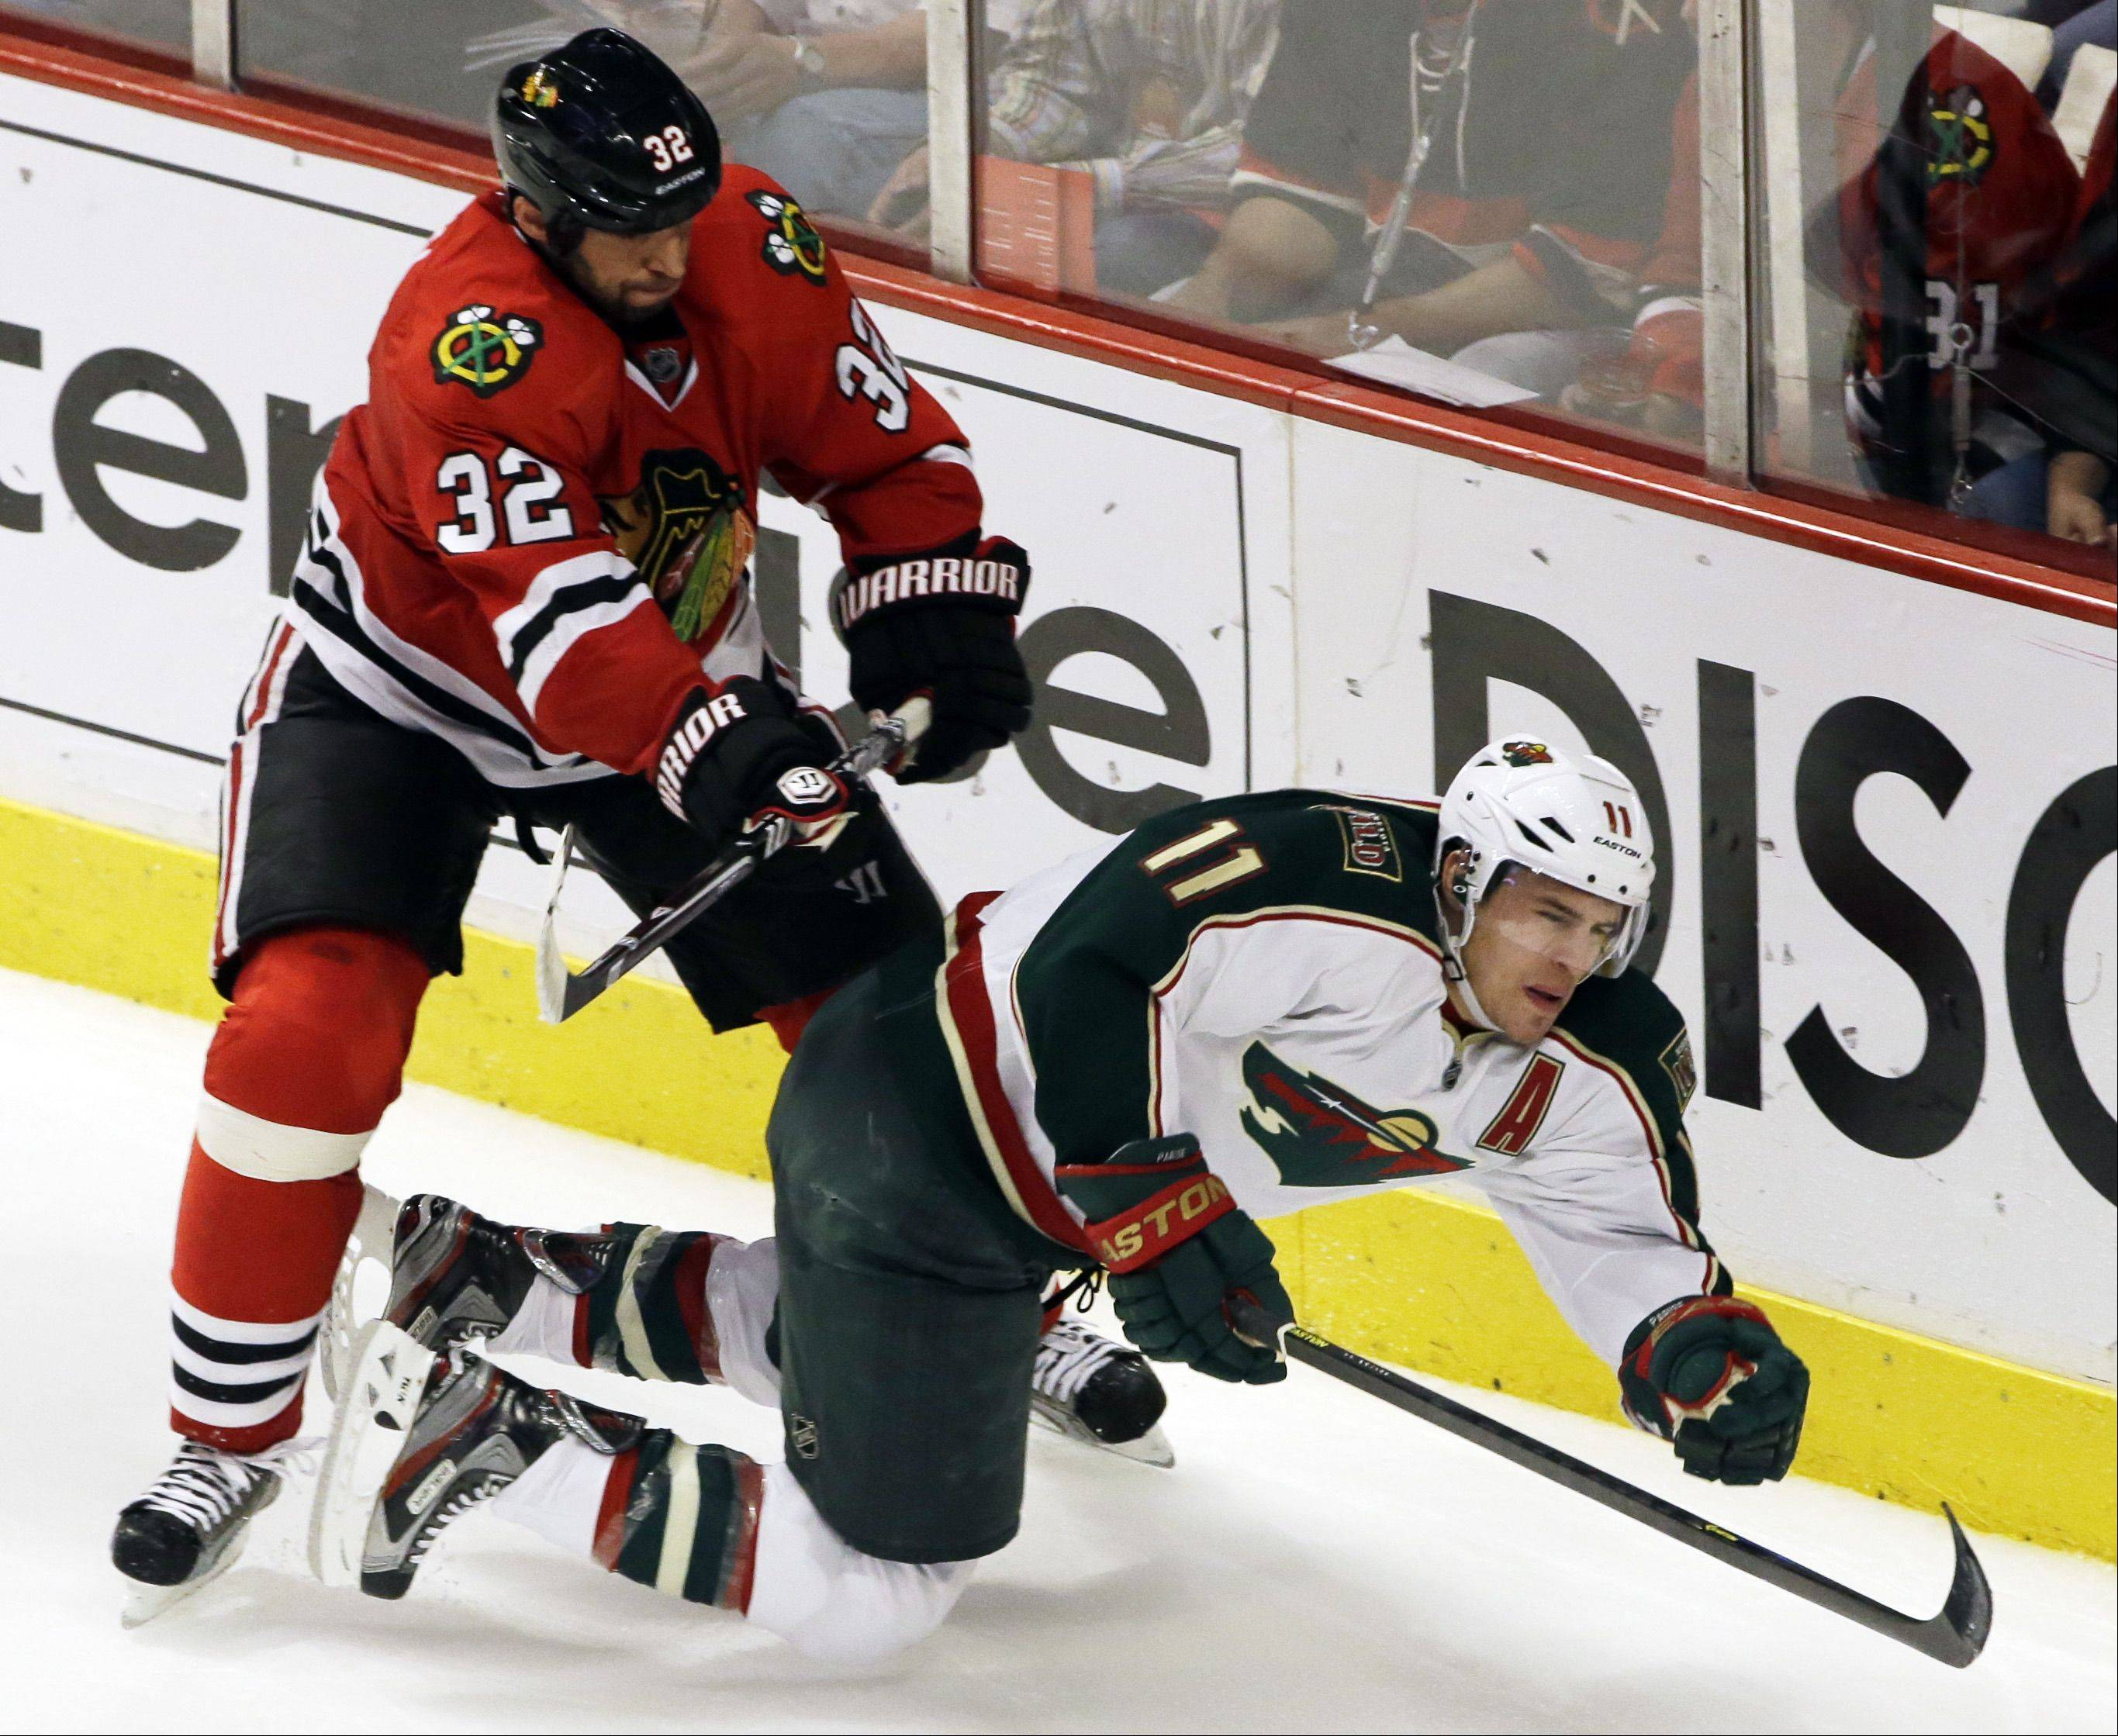 Minnesota Wild's Zach Parise (11) is checked by Chicago Blackhawks' Michal Rozsival (32) during the third period of Game 5 of an NHL hockey Stanley Cup first-round playoff series in Chicago, Thursday, May 9, 2013. The Blackhawks won 5-1.